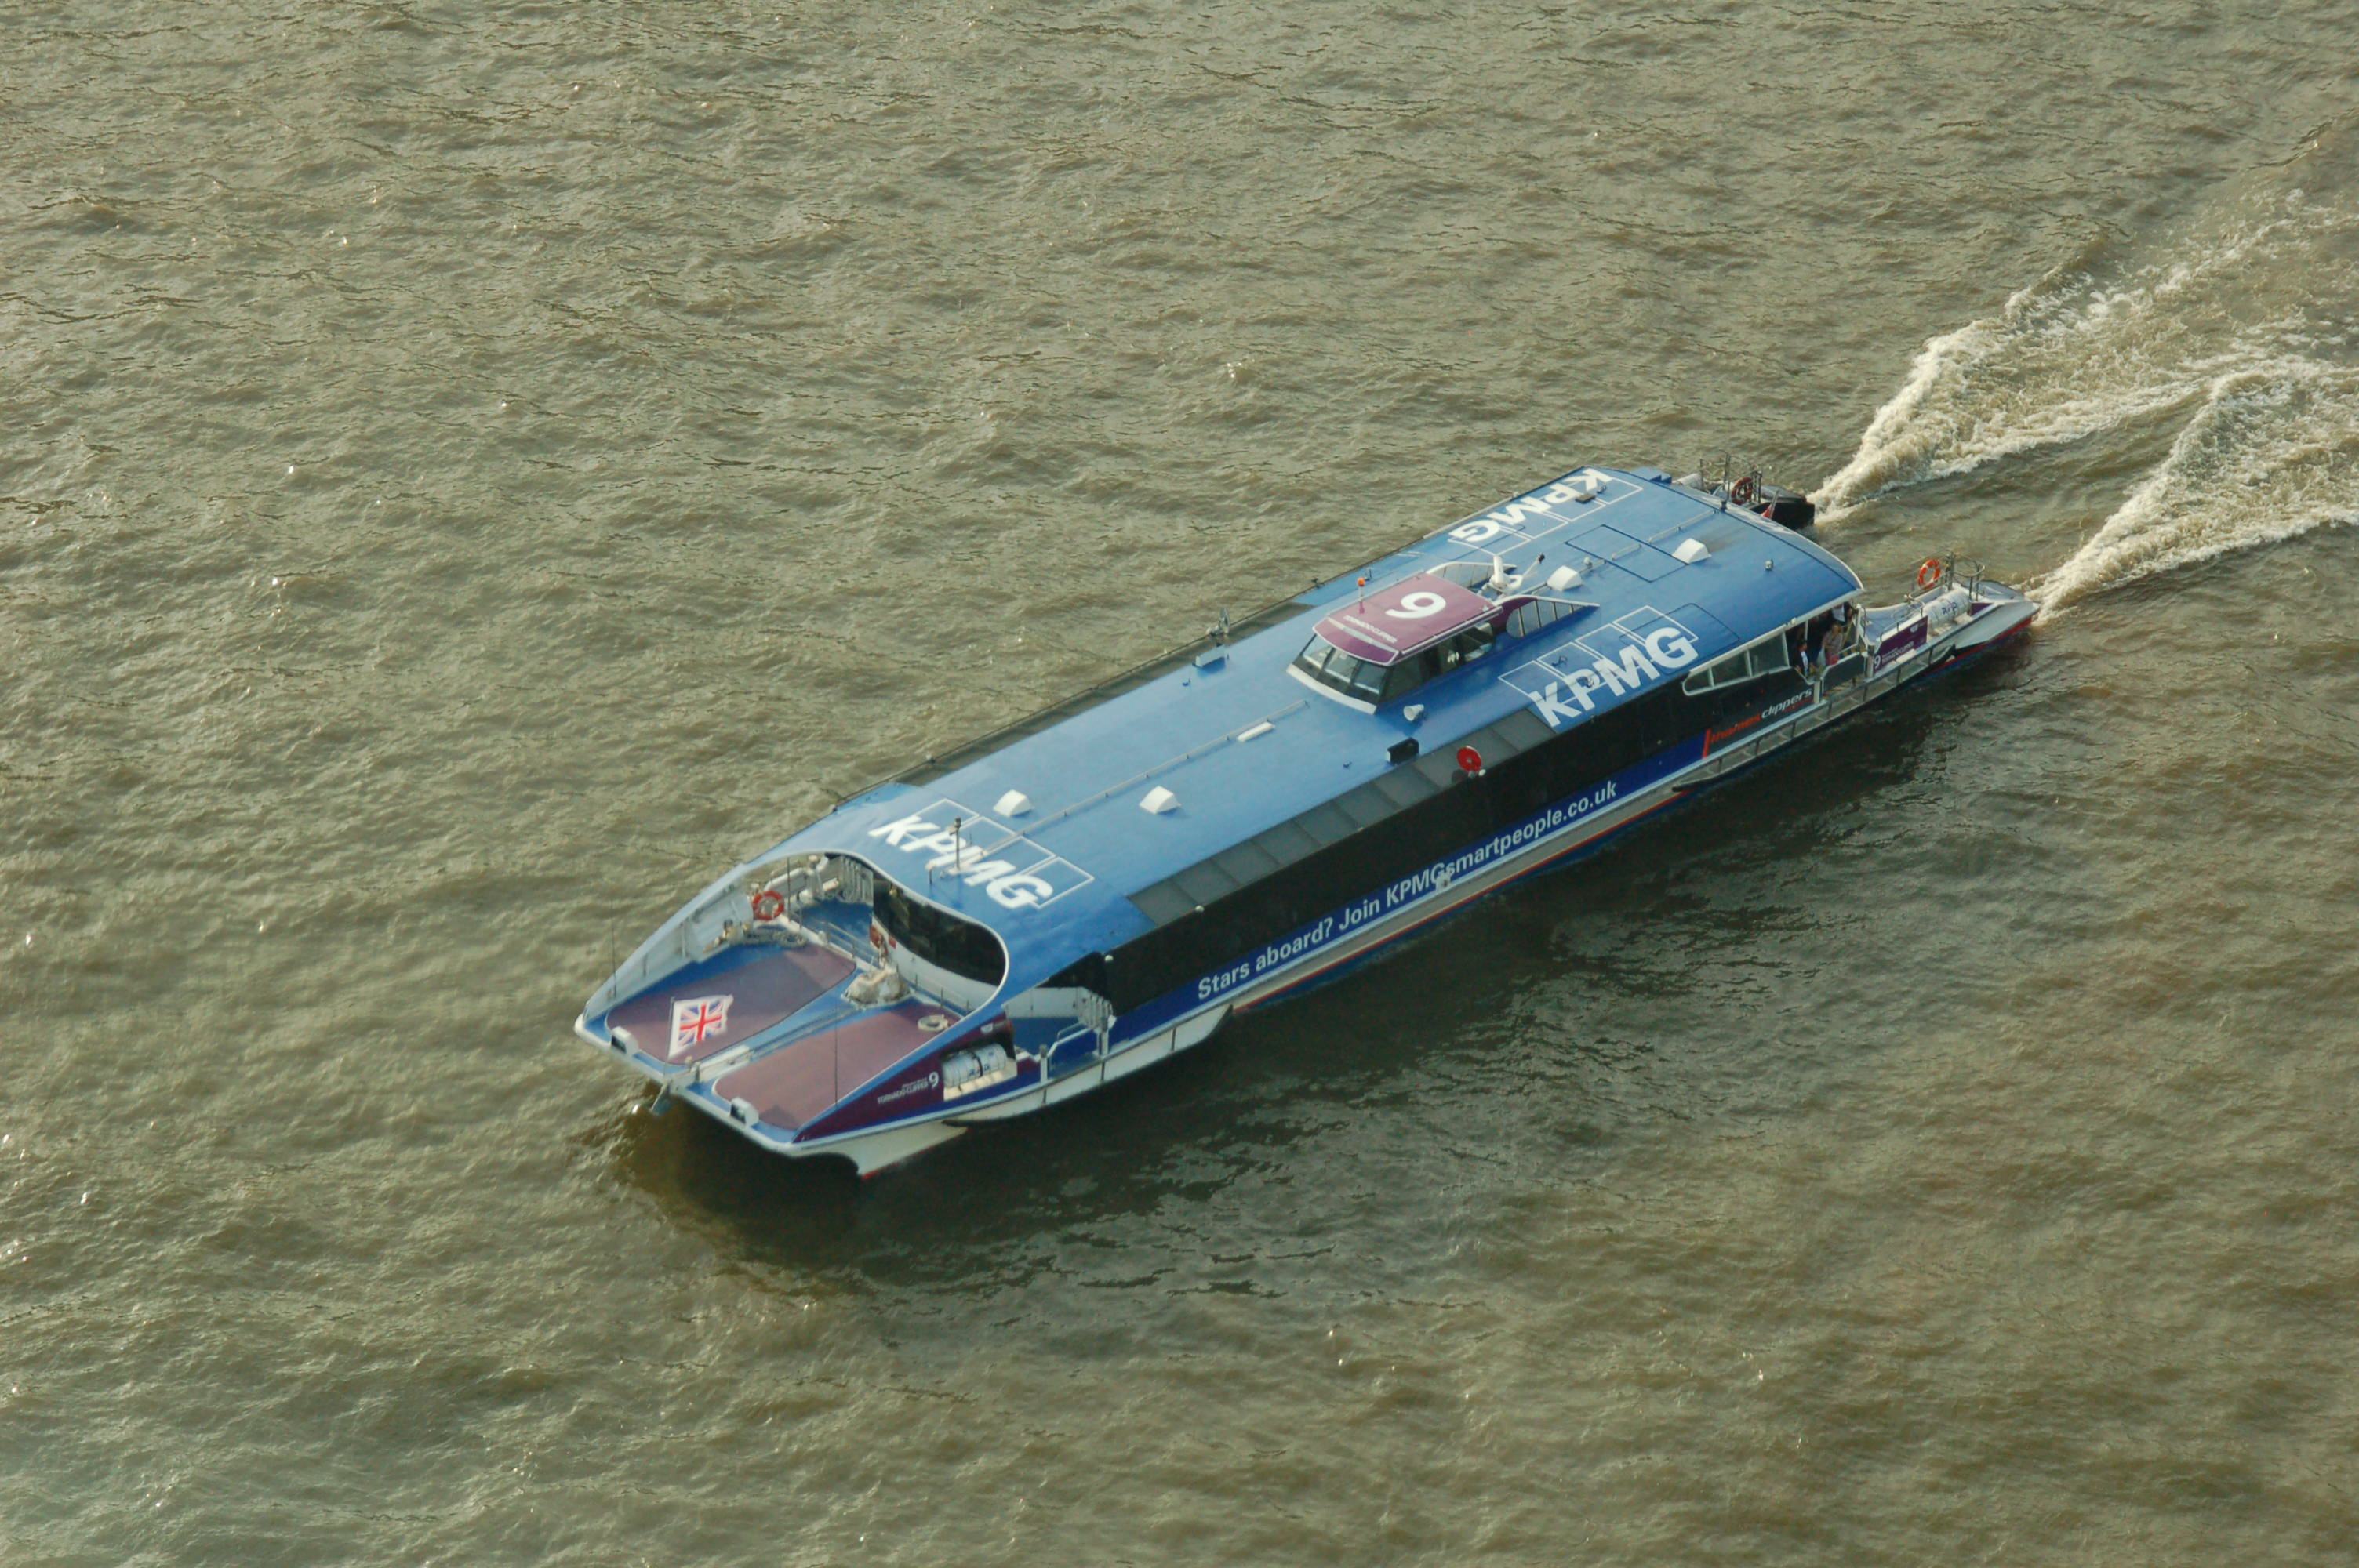 Fast Boat on the Thames